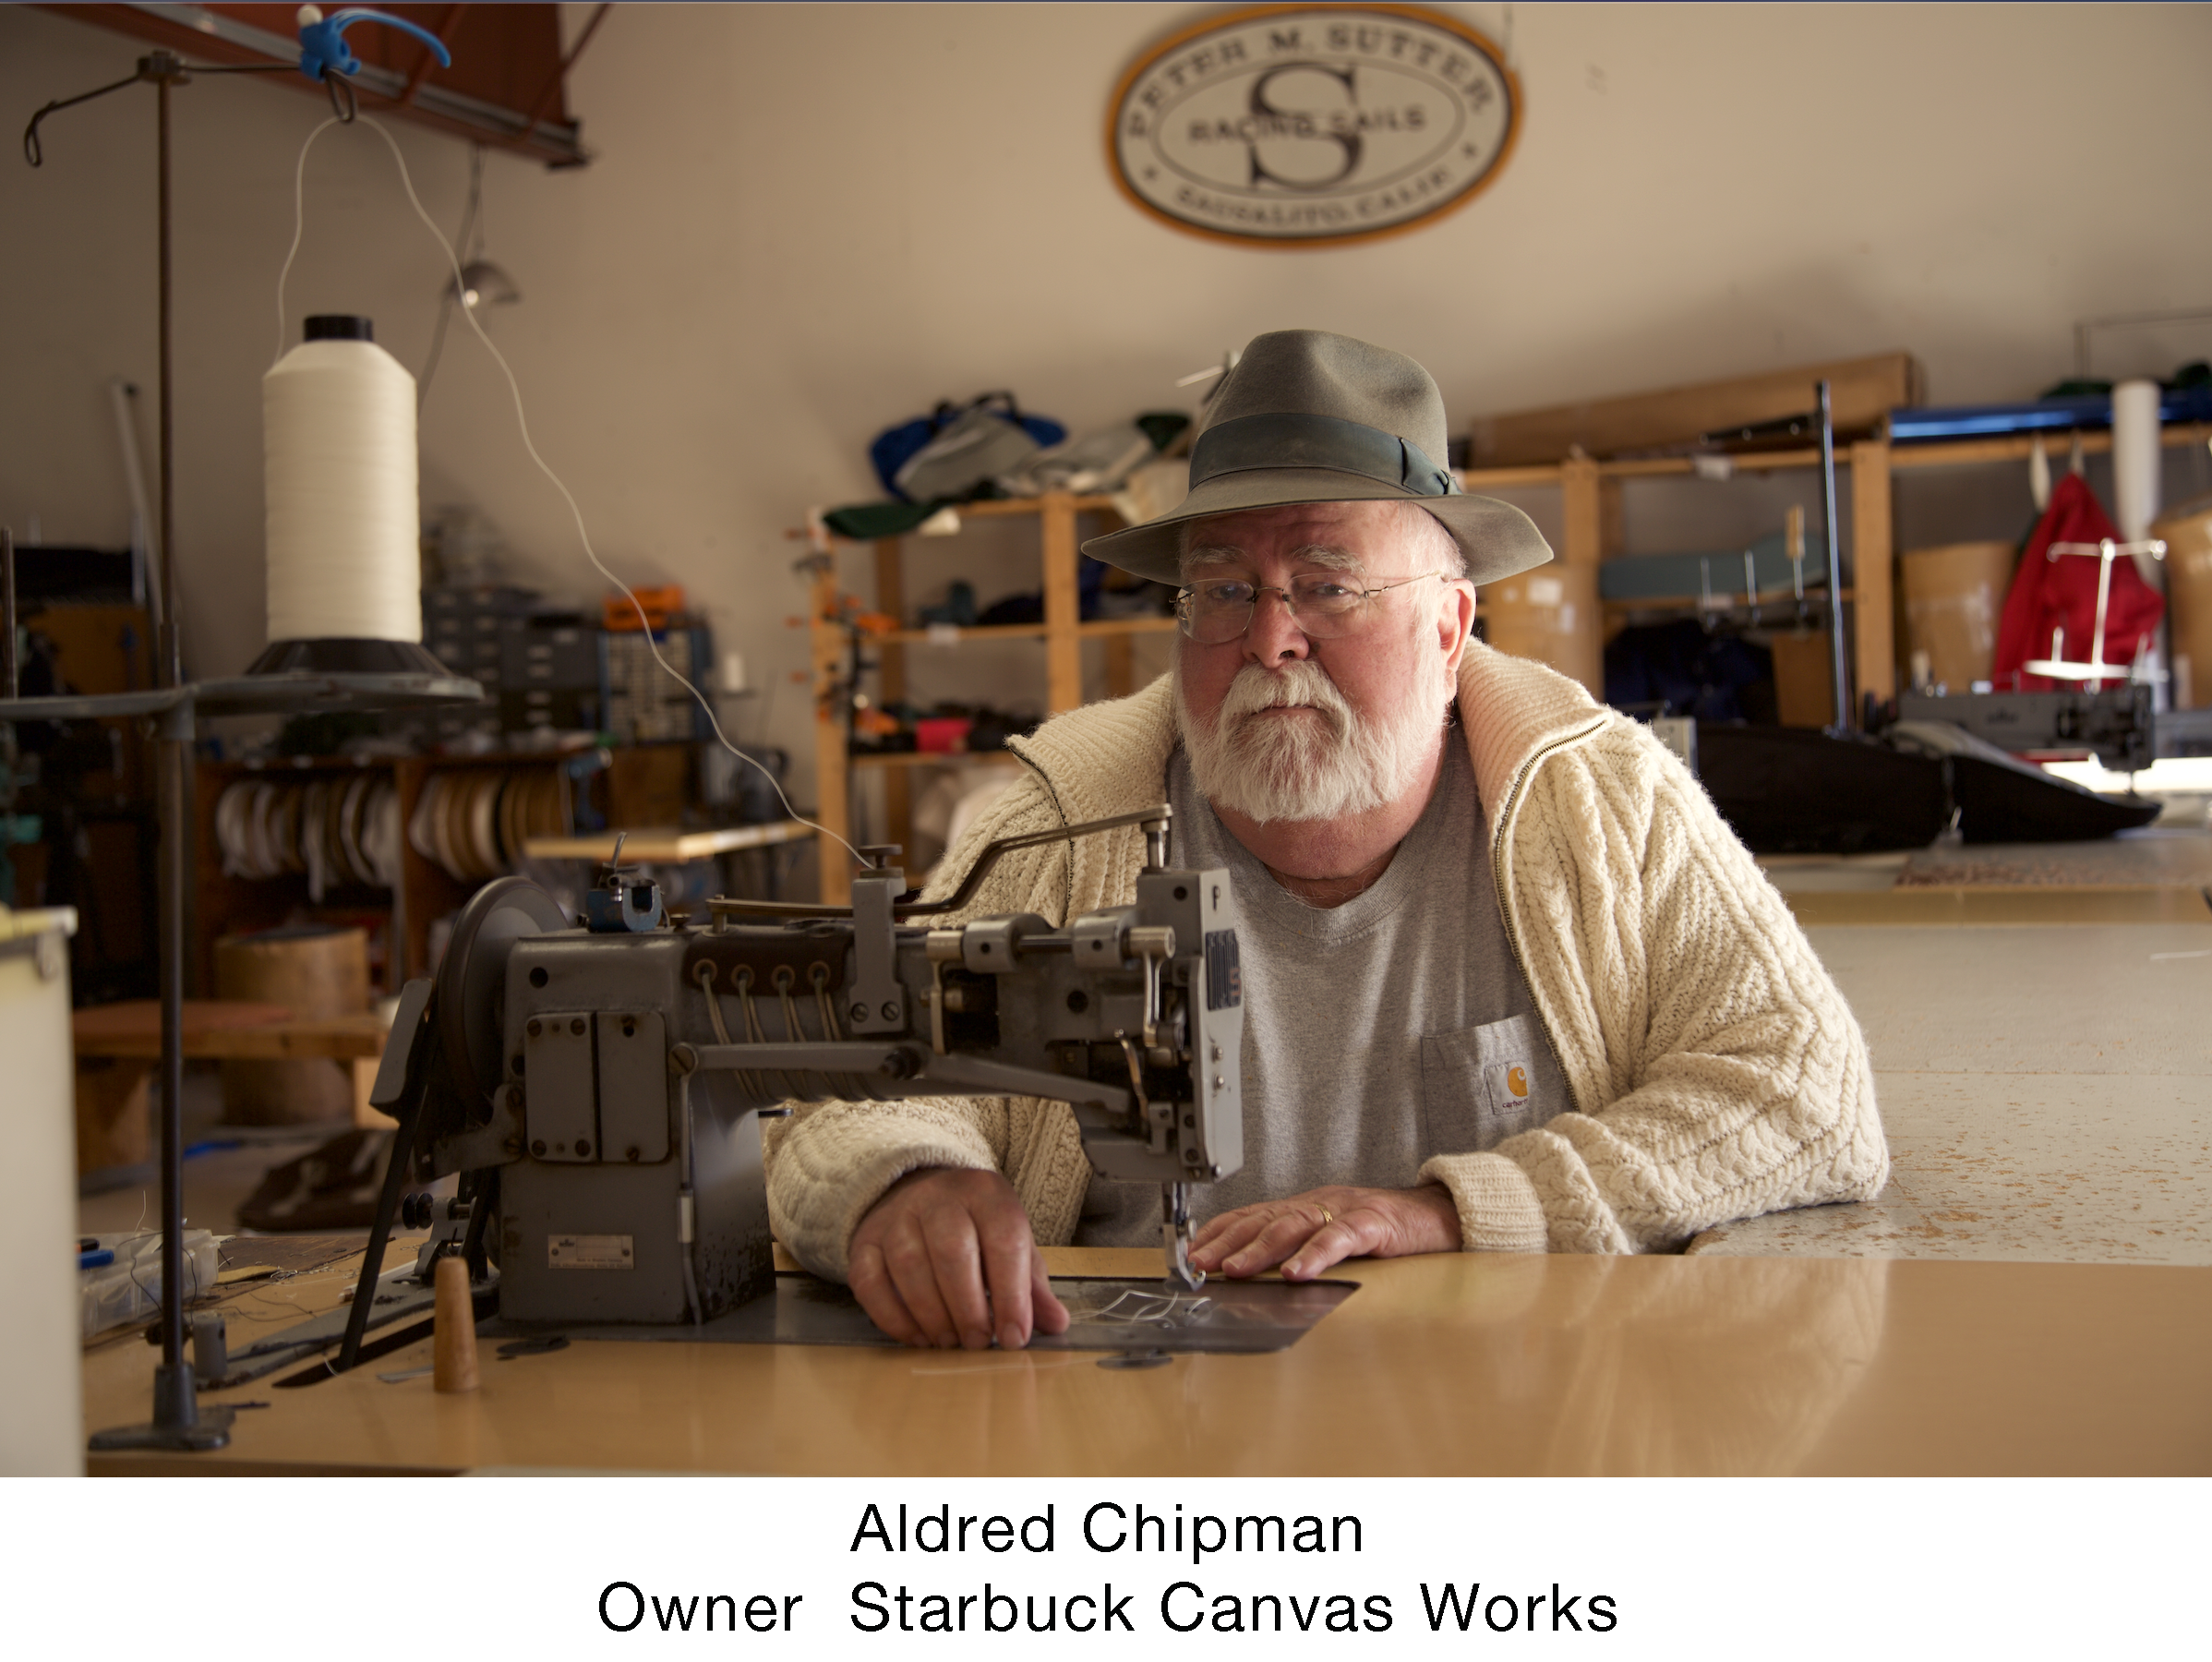 Aldred lorez at sewing machine.png